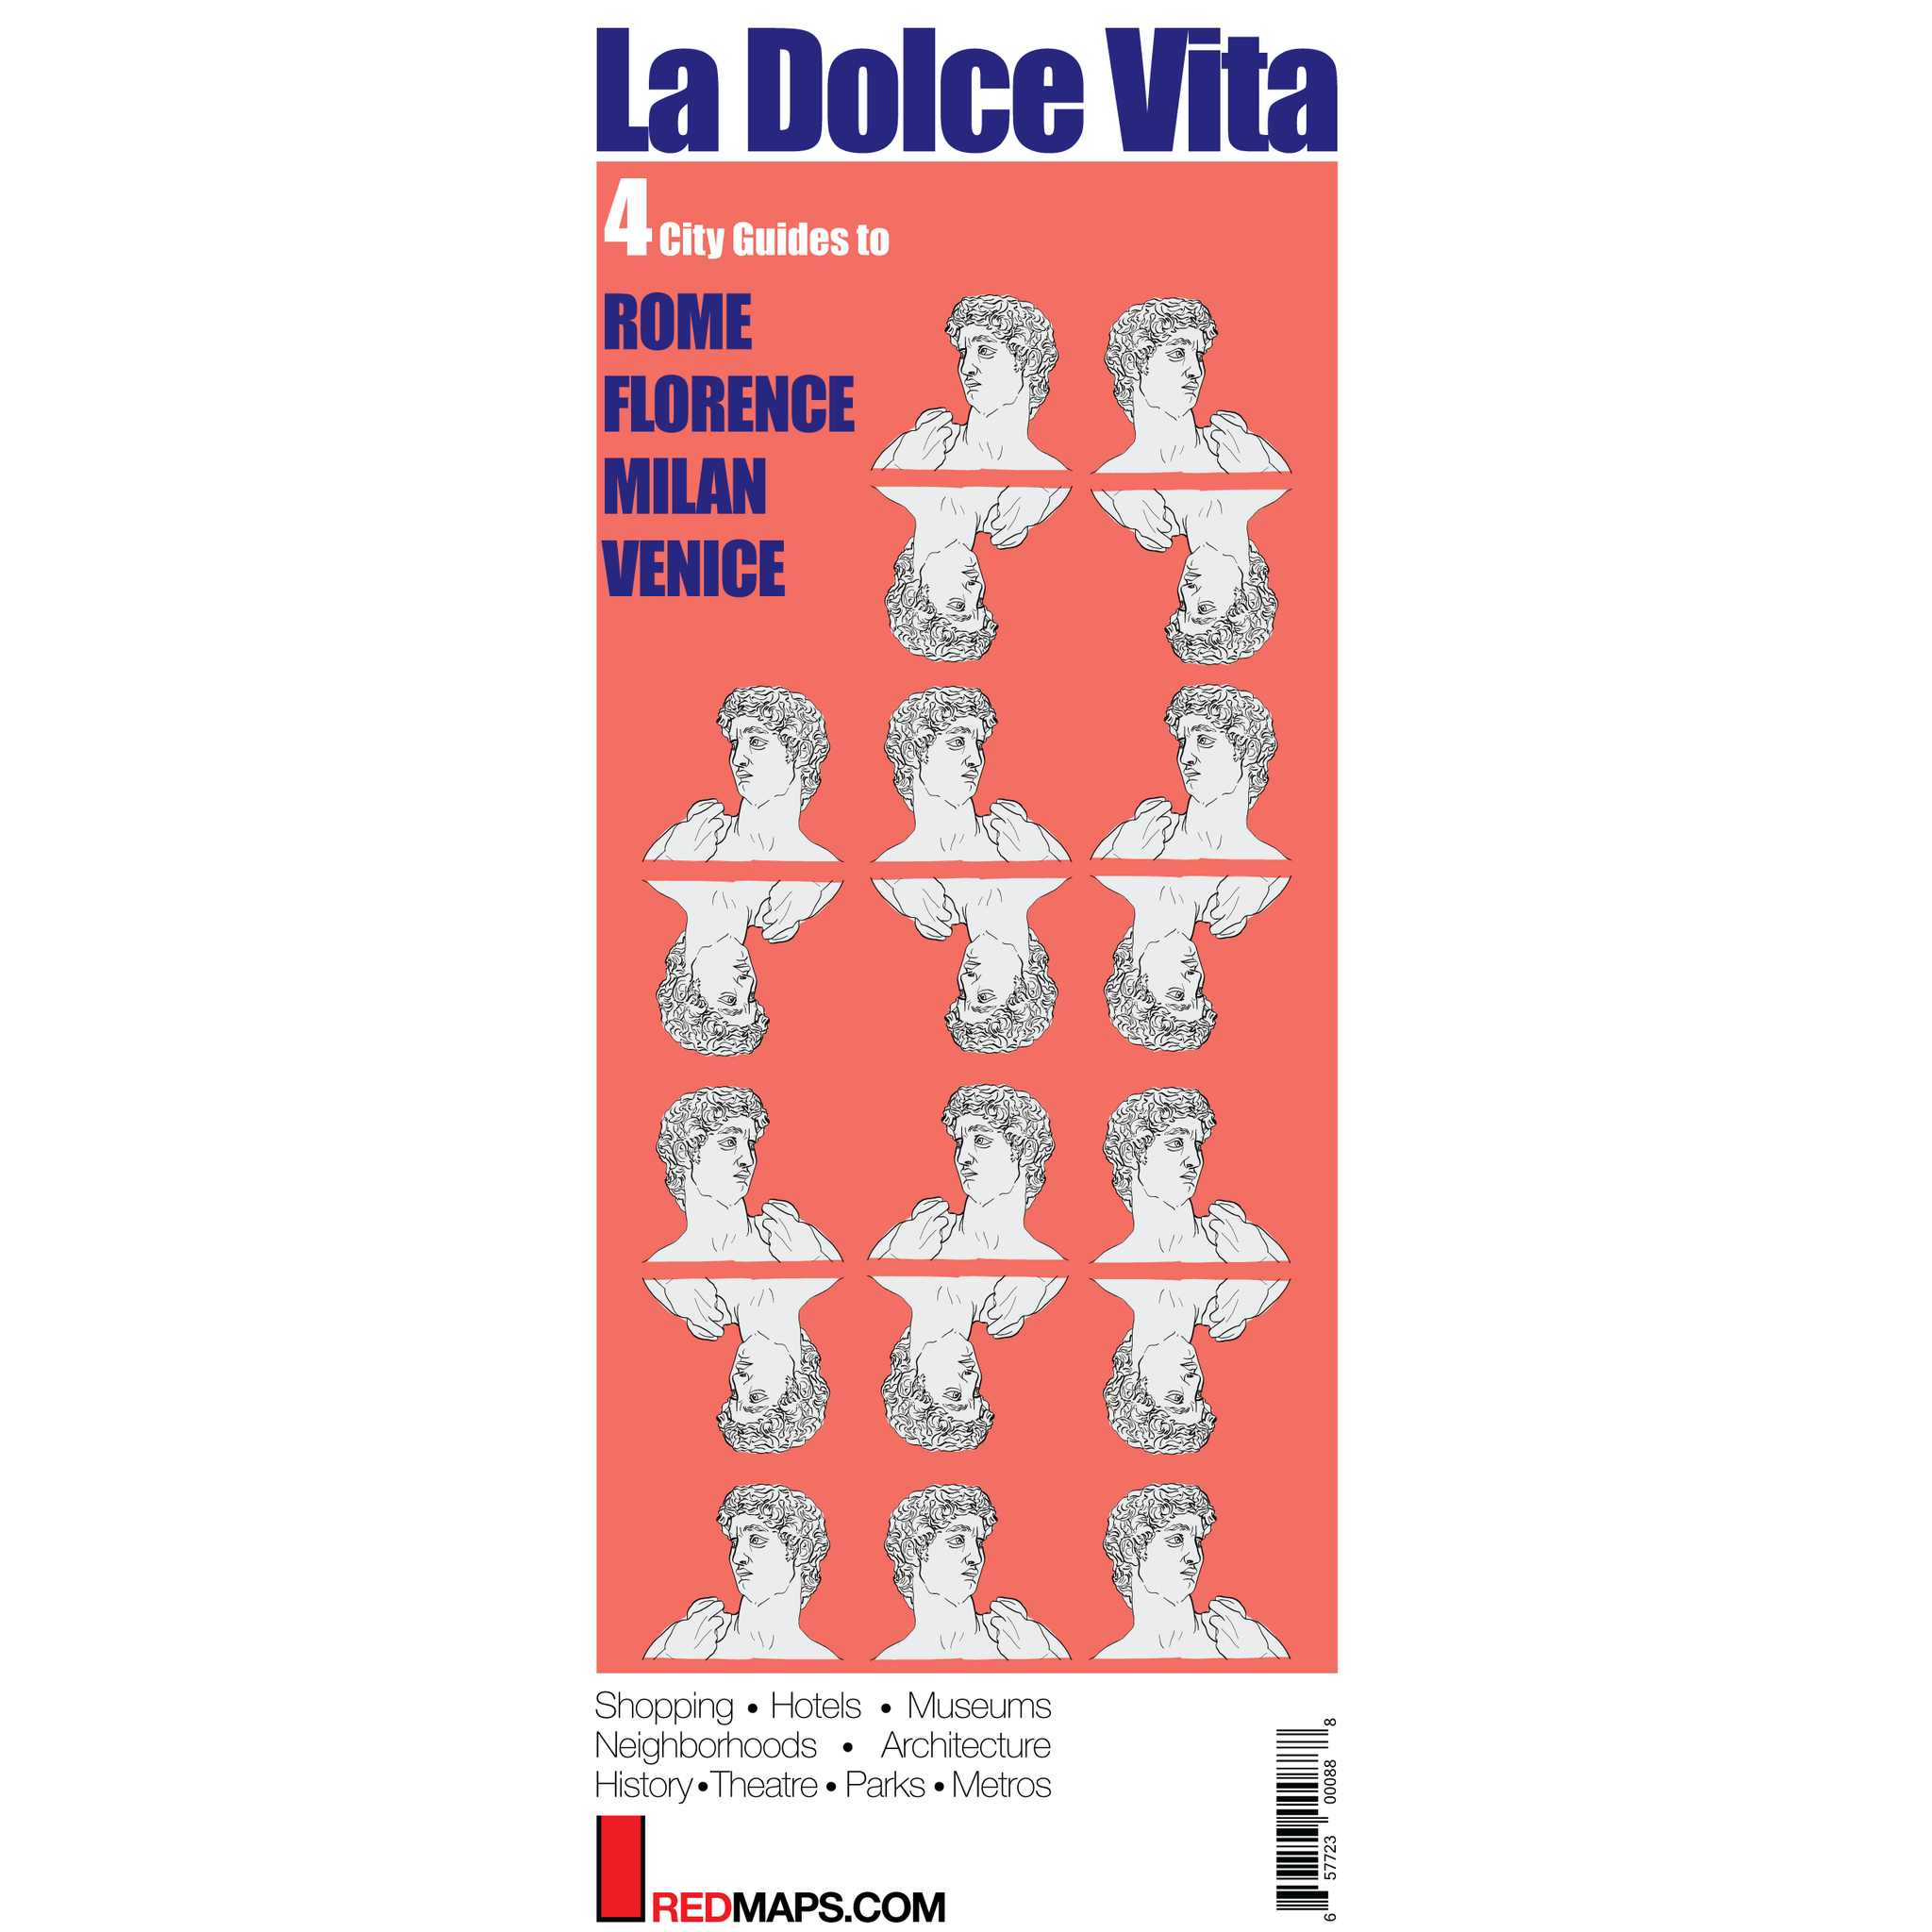 Multi-City map set called La Dolce Vita with 4 cultural guides to Rome, Milan, Venice and Florence